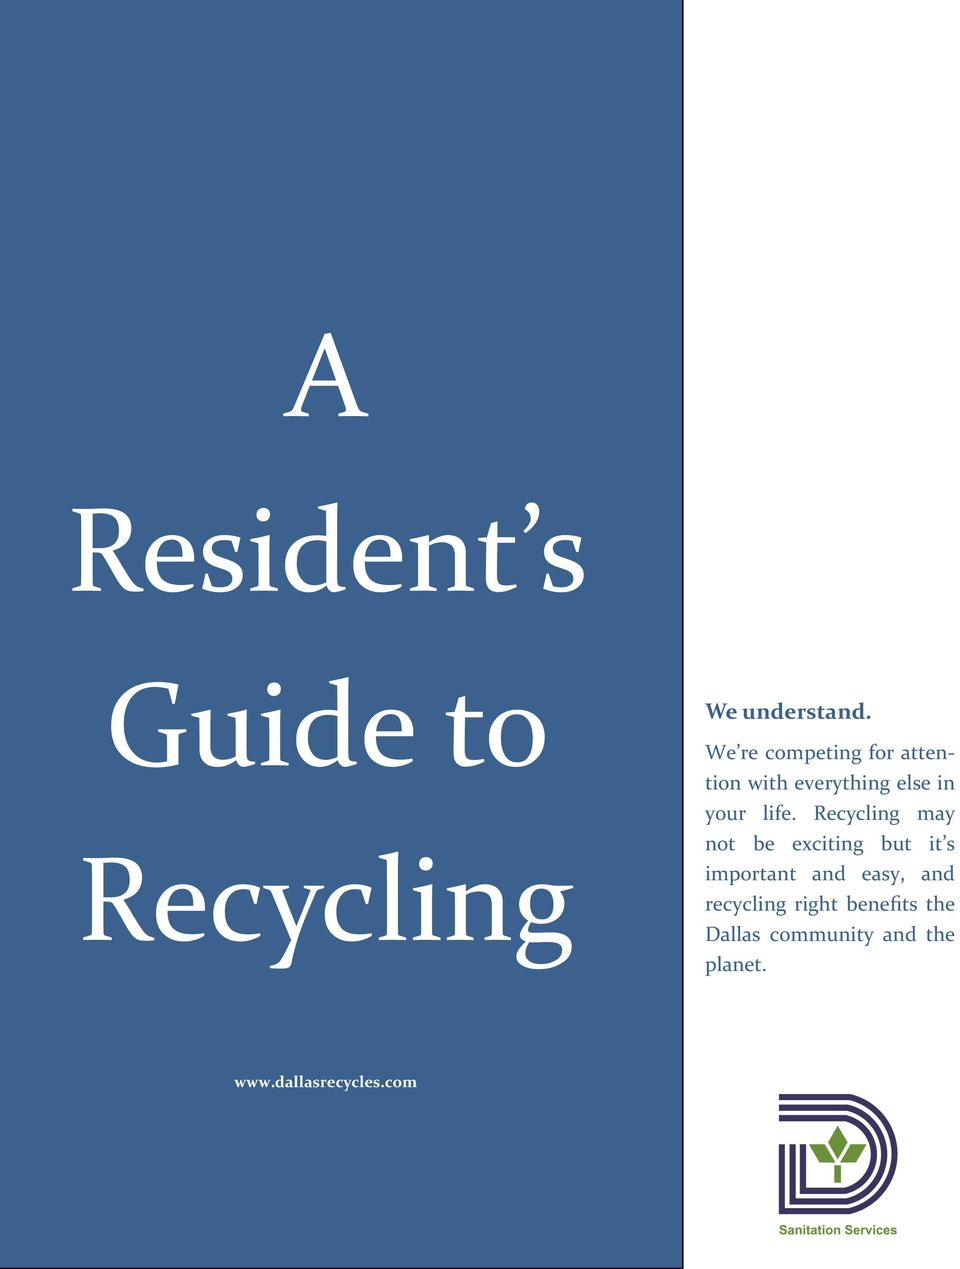 Recycling may not be exciting but it s important and easy, and